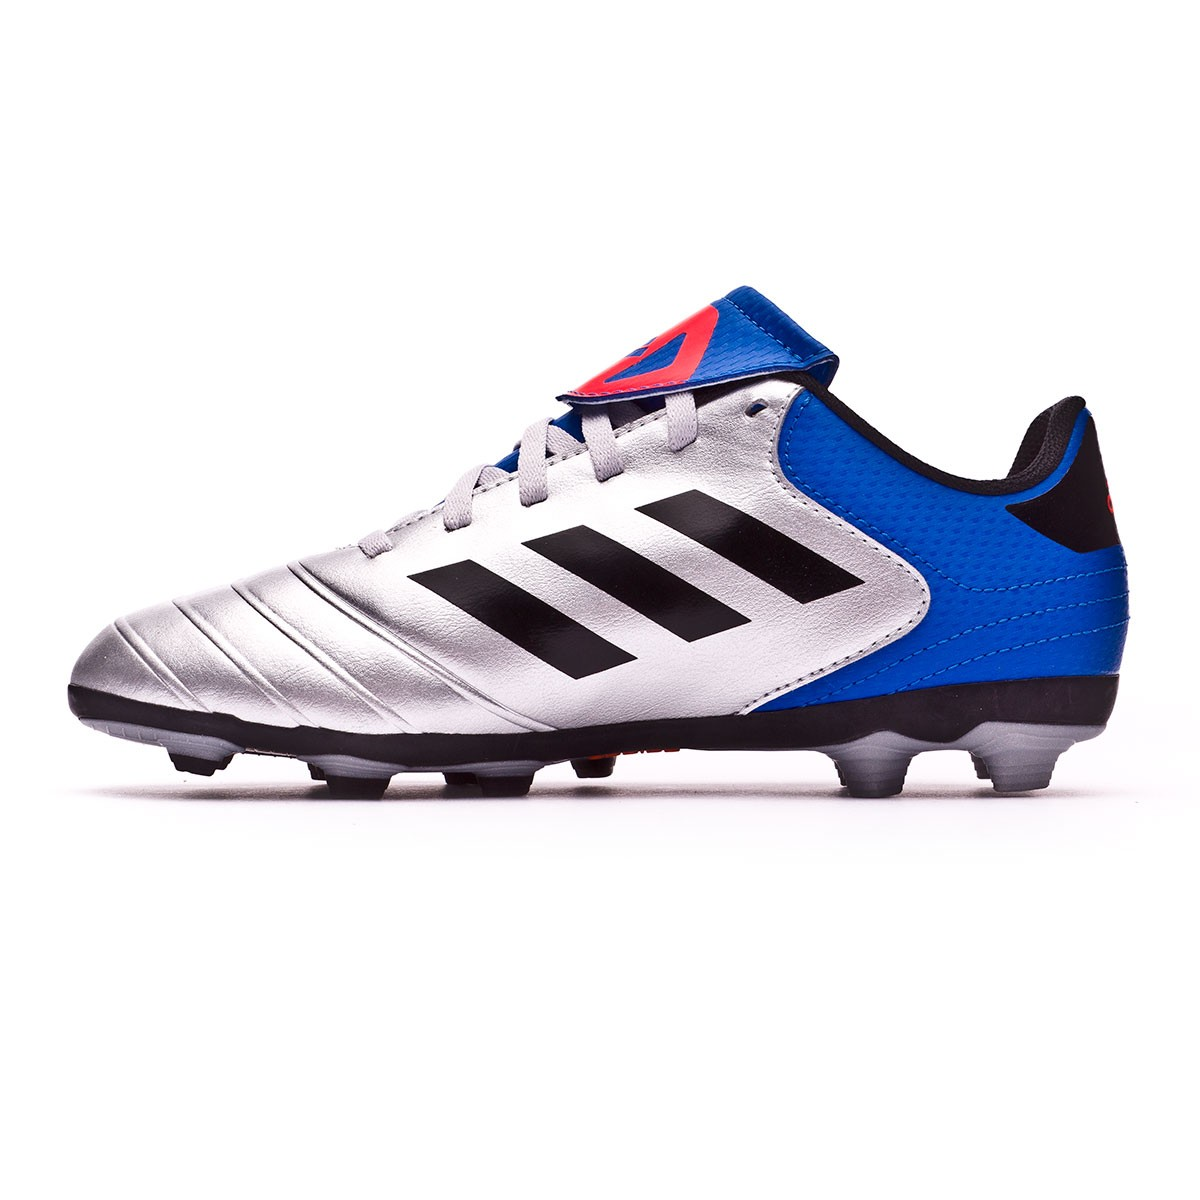 factory authentic 6dd30 82221 ... Bota Copa 18.4 FxG Niño Silver metallic-Core black-Football blue.  CATEGORY